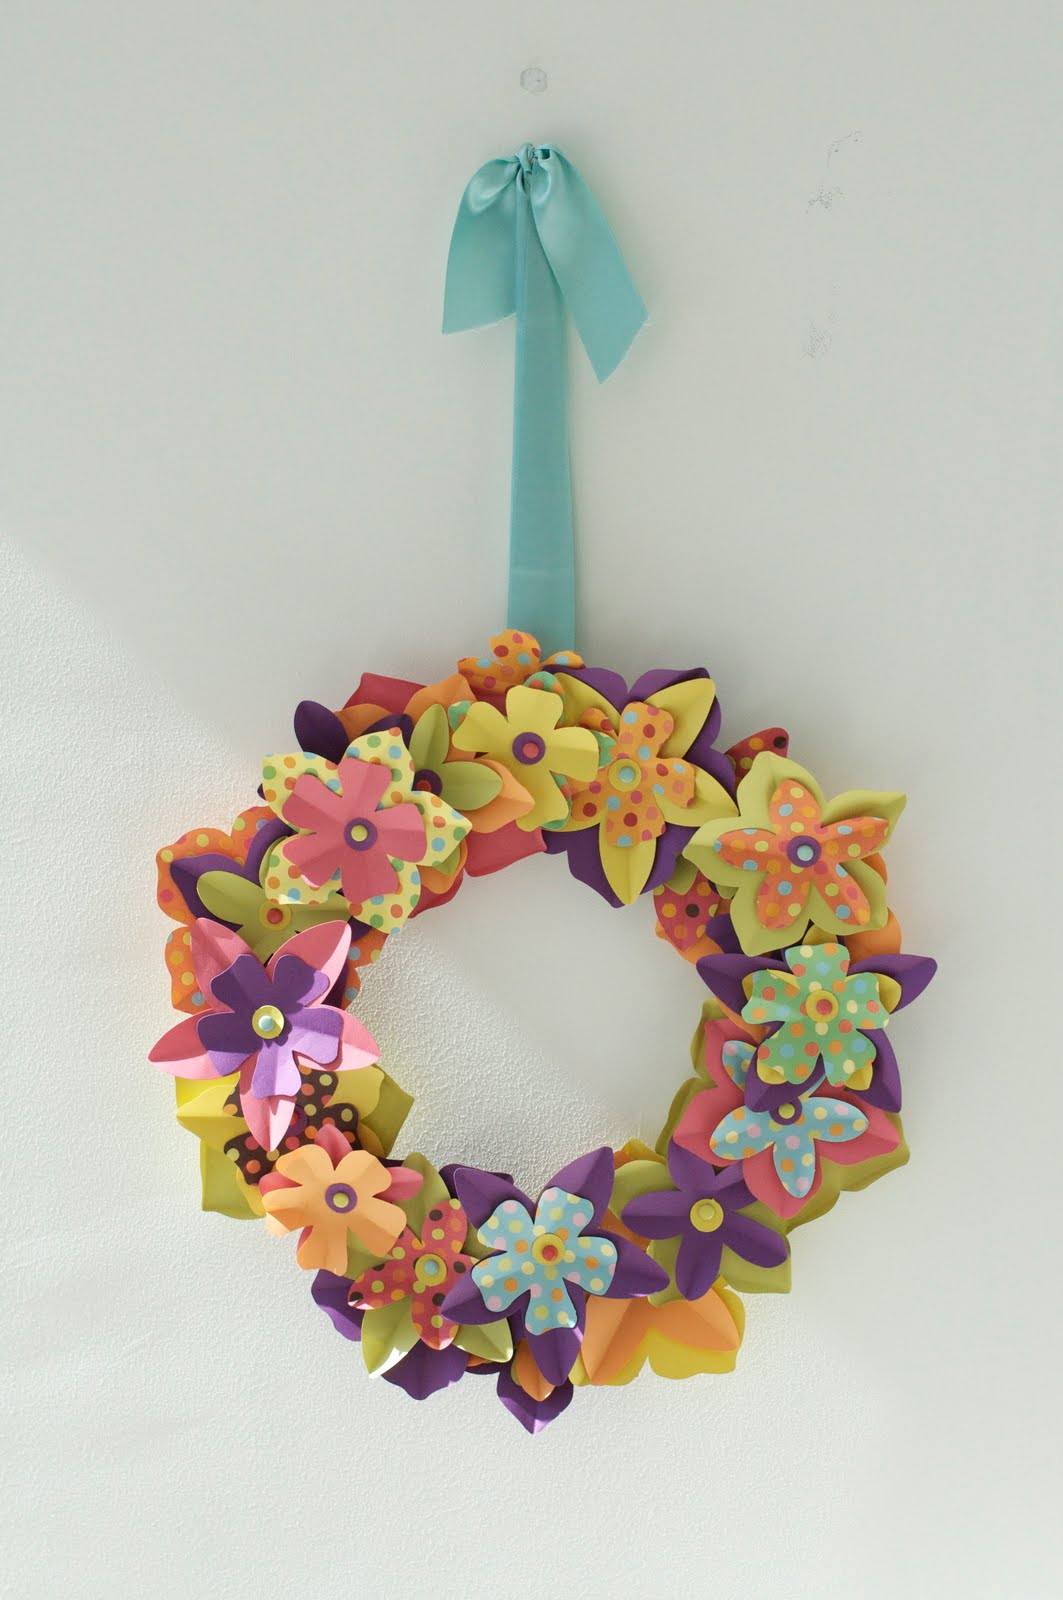 Diy spring wreath ideas 2015 for Decorative flowers for crafts